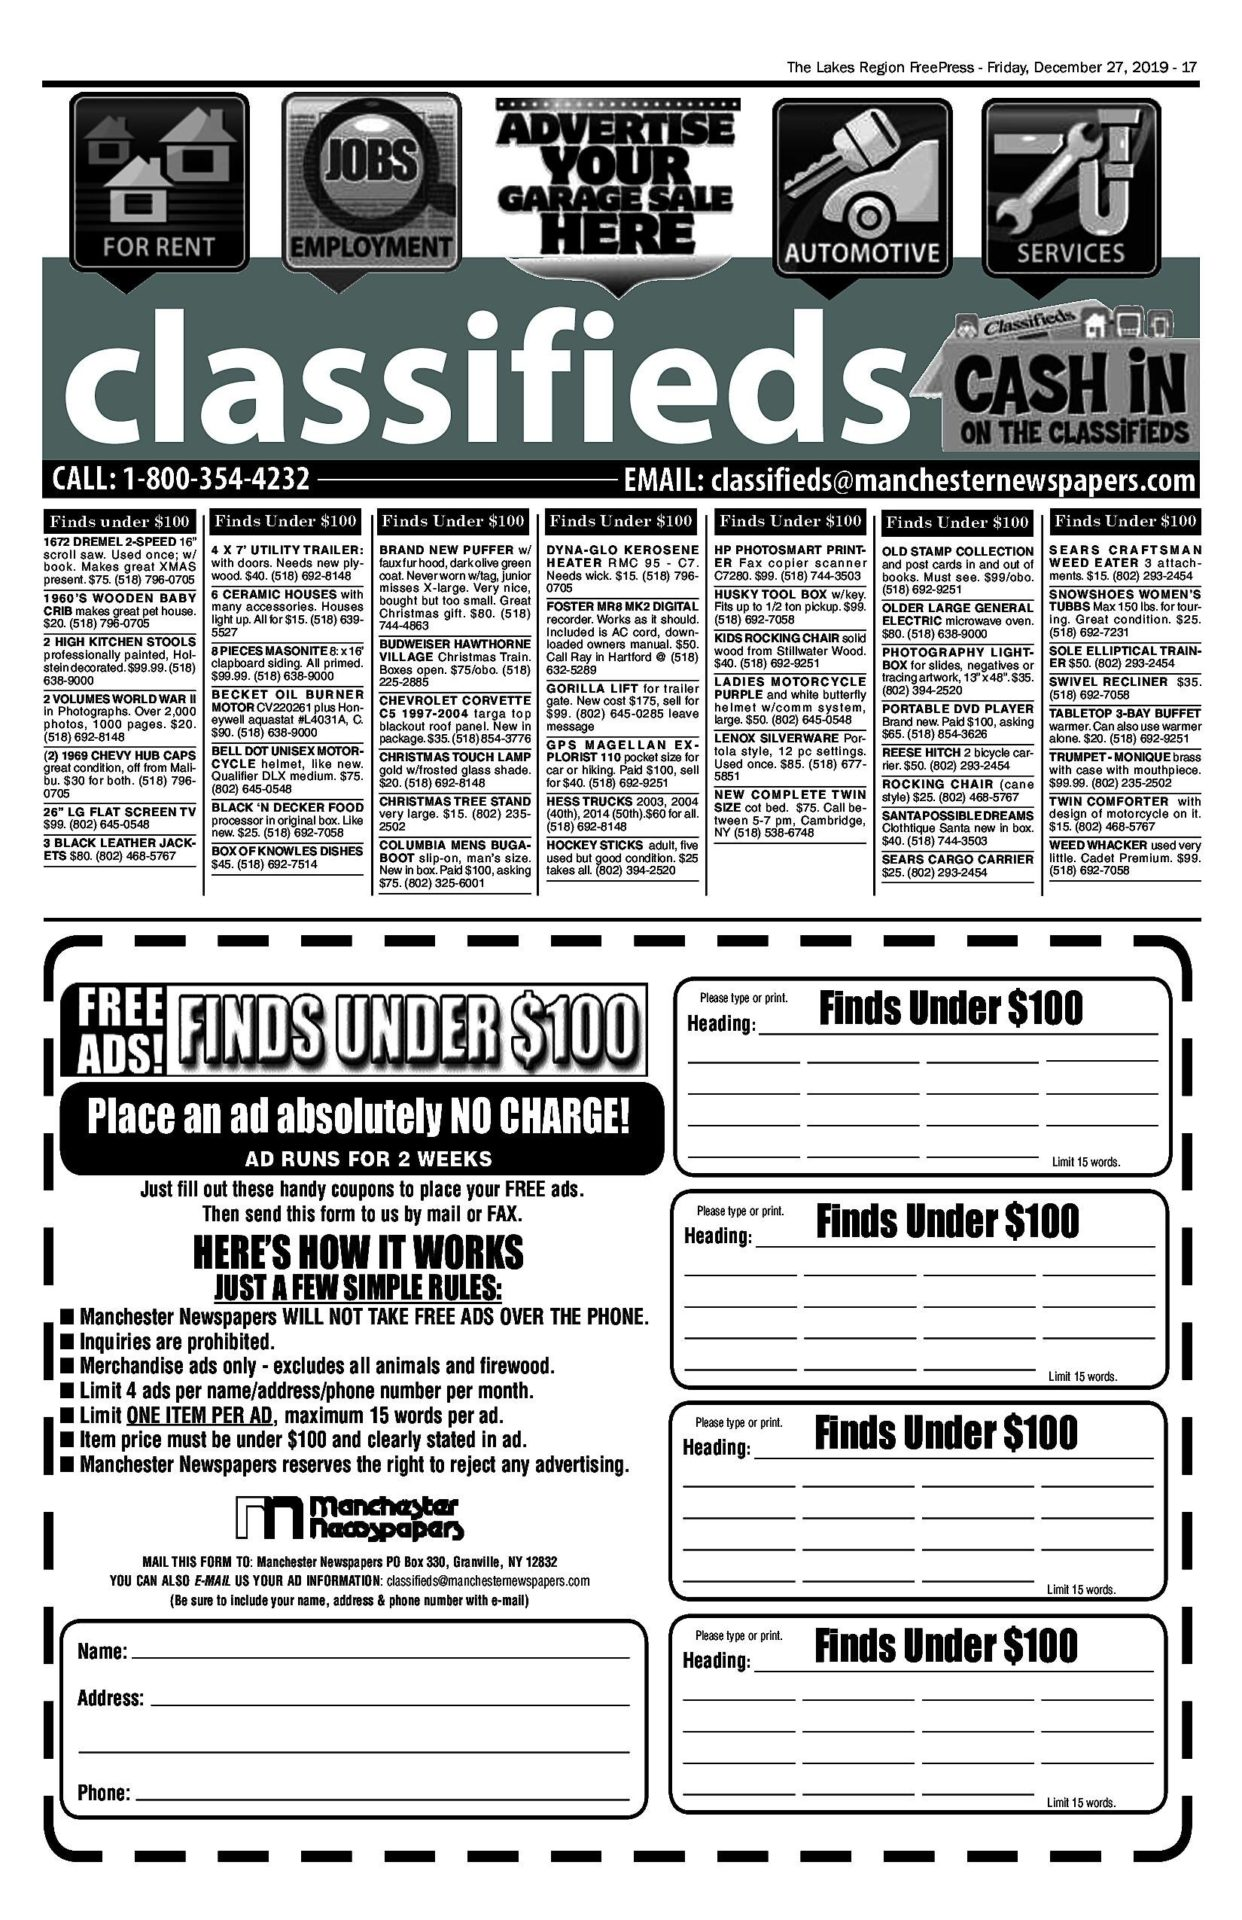 Lakes Classifieds – 12/27/19